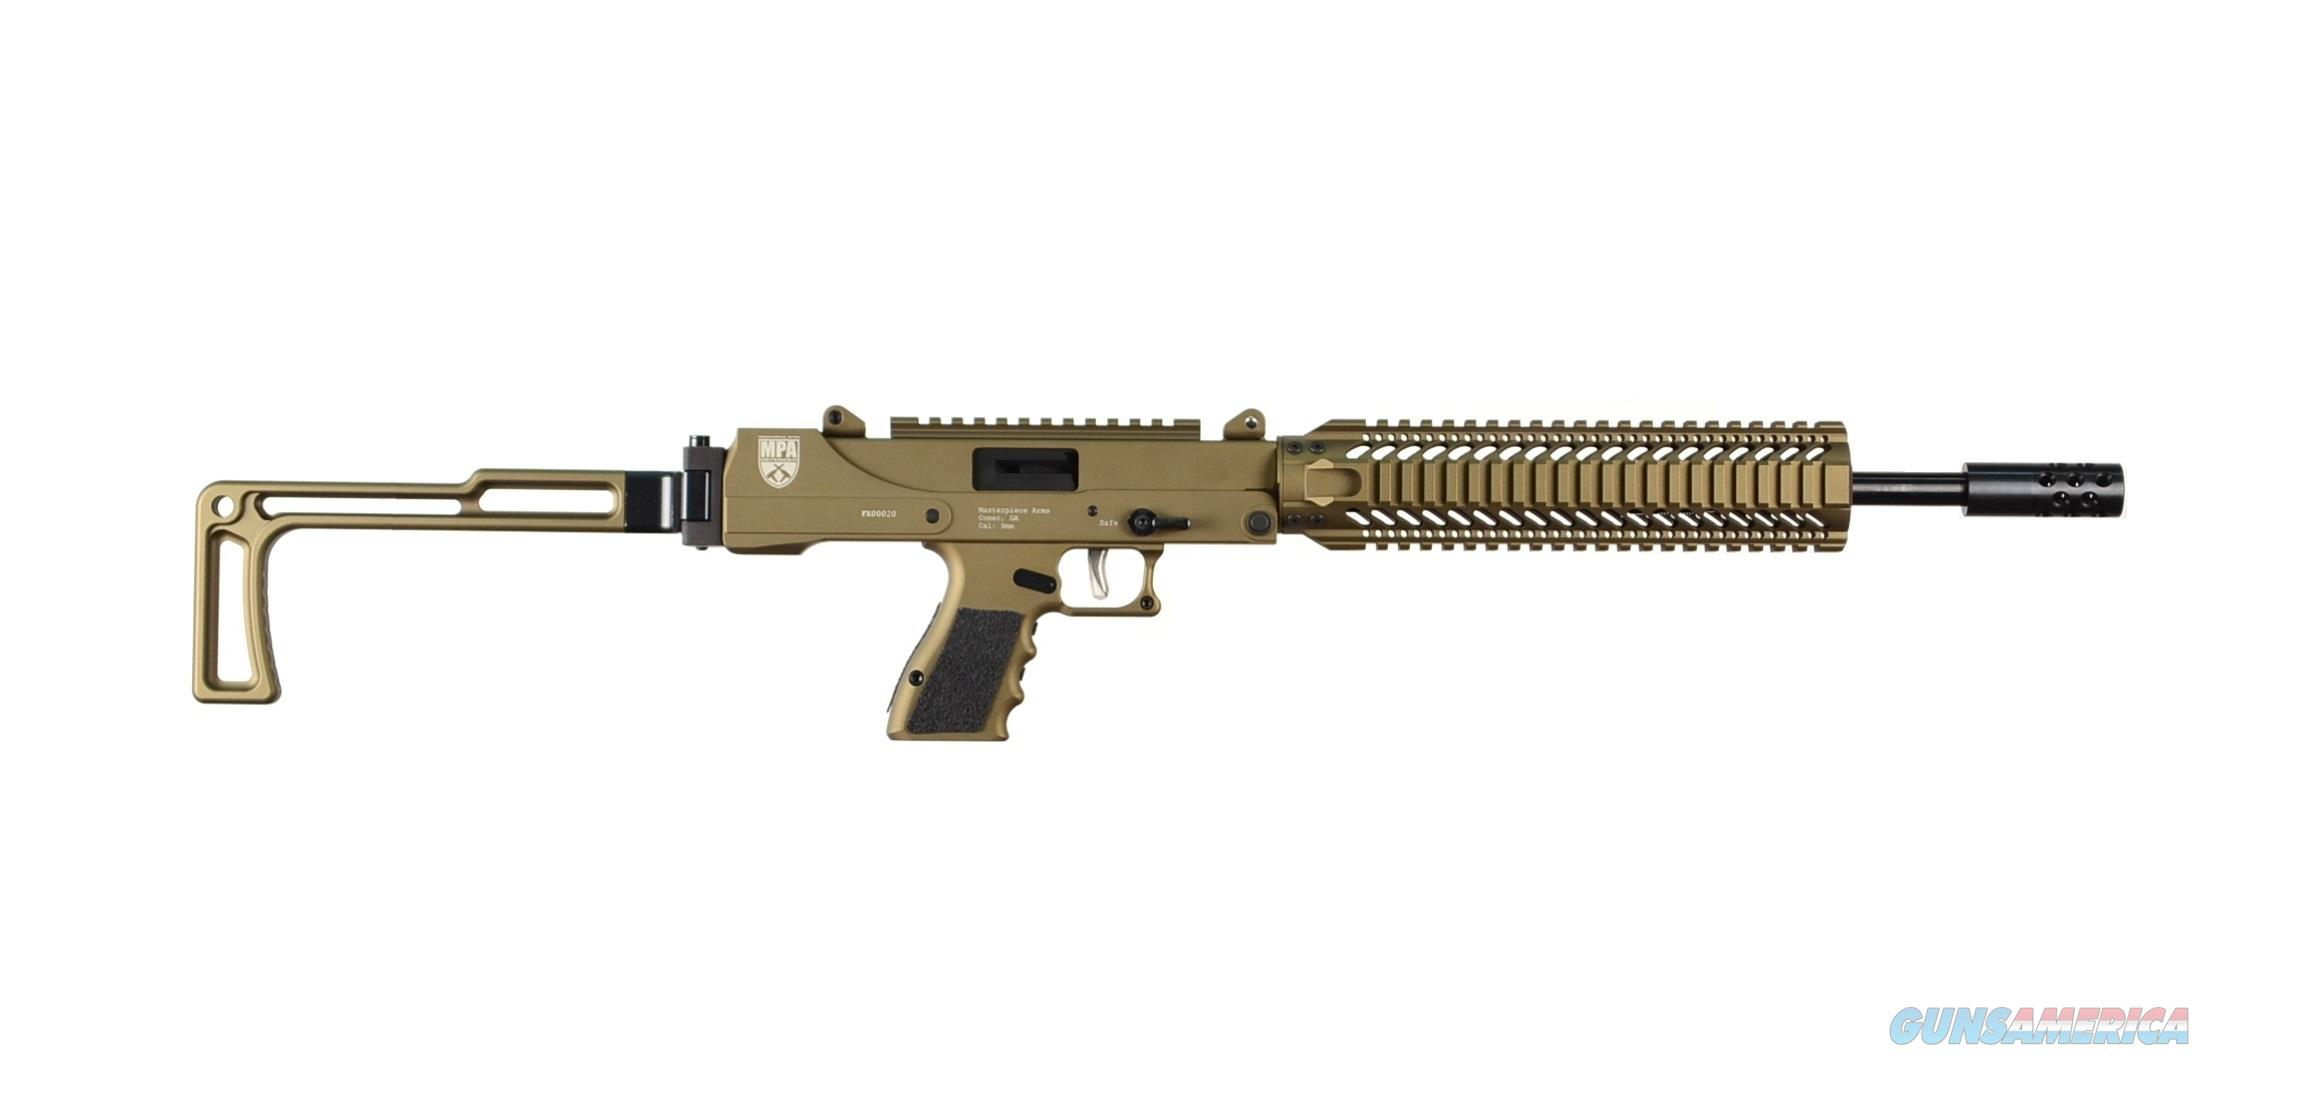 MASTERPIECE ARMS 9MM CARBINE***NEW IN BOX***BURNT BRONZE  Guns > Rifles > MasterPiece Arms Rifles > Defender